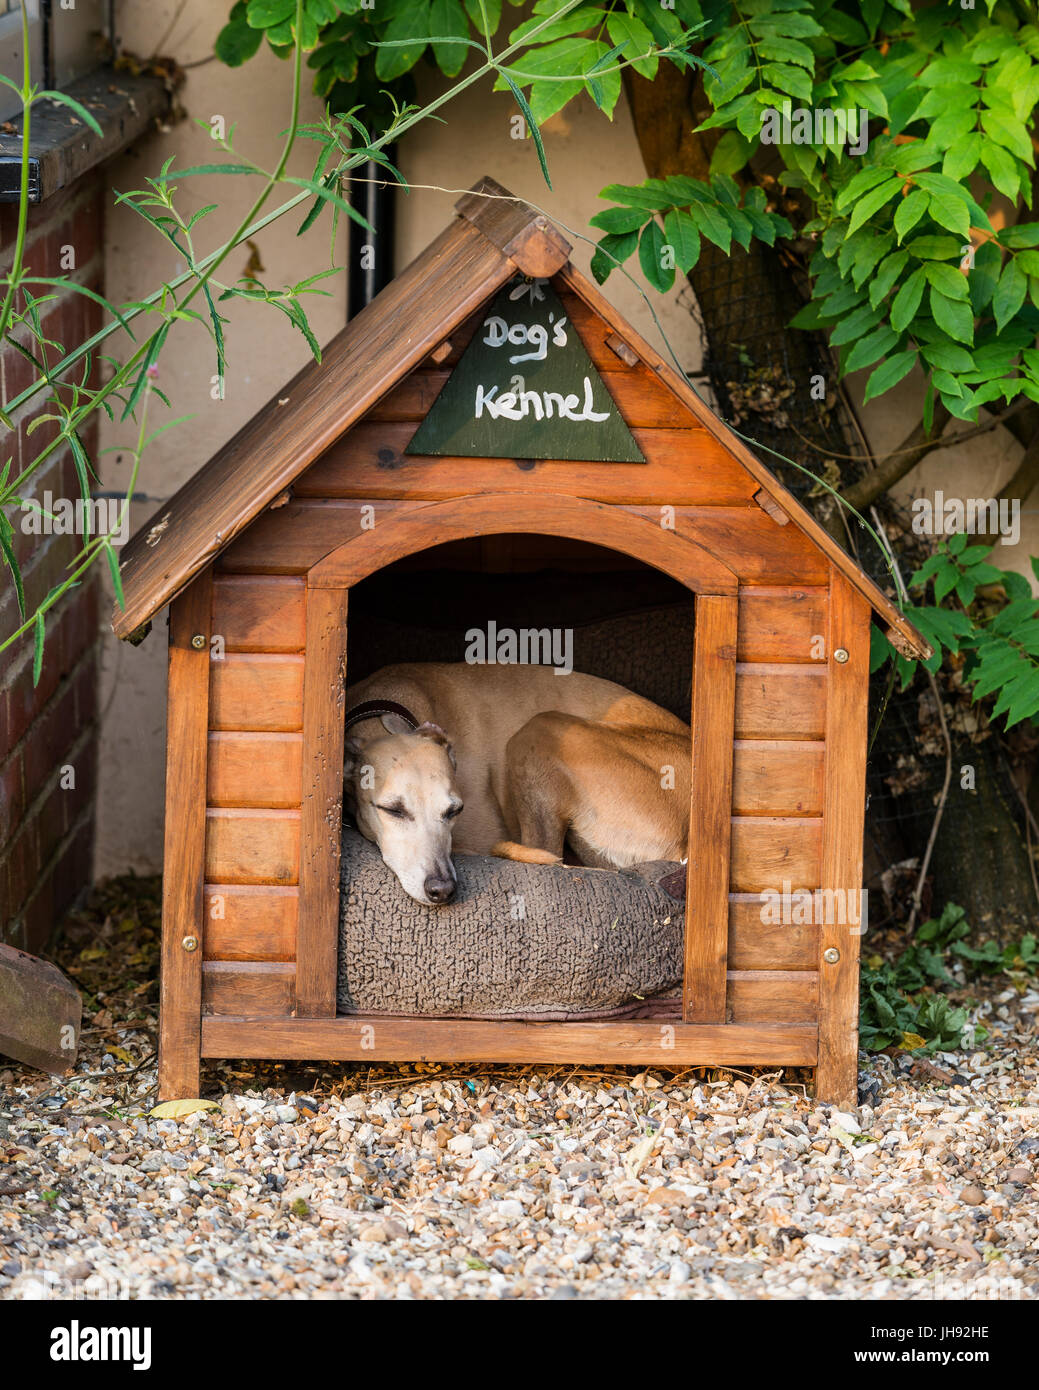 Dog in wooden kennel - Stock Image